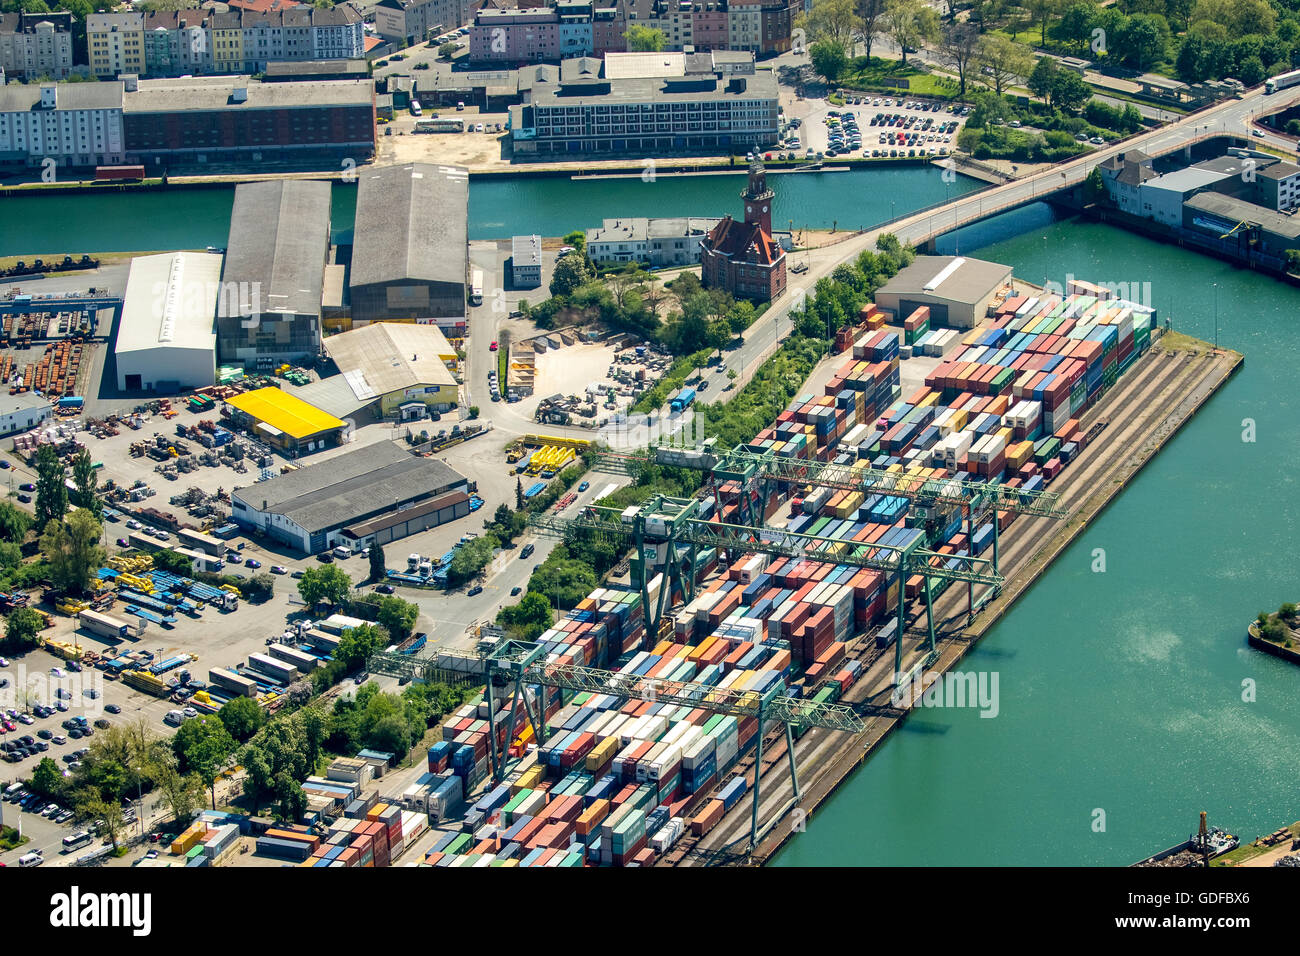 Aerial view, containers at the Port of Dortmund, inland port, Old Port Authority, Dortmund-Ems Canal, container - Stock Image